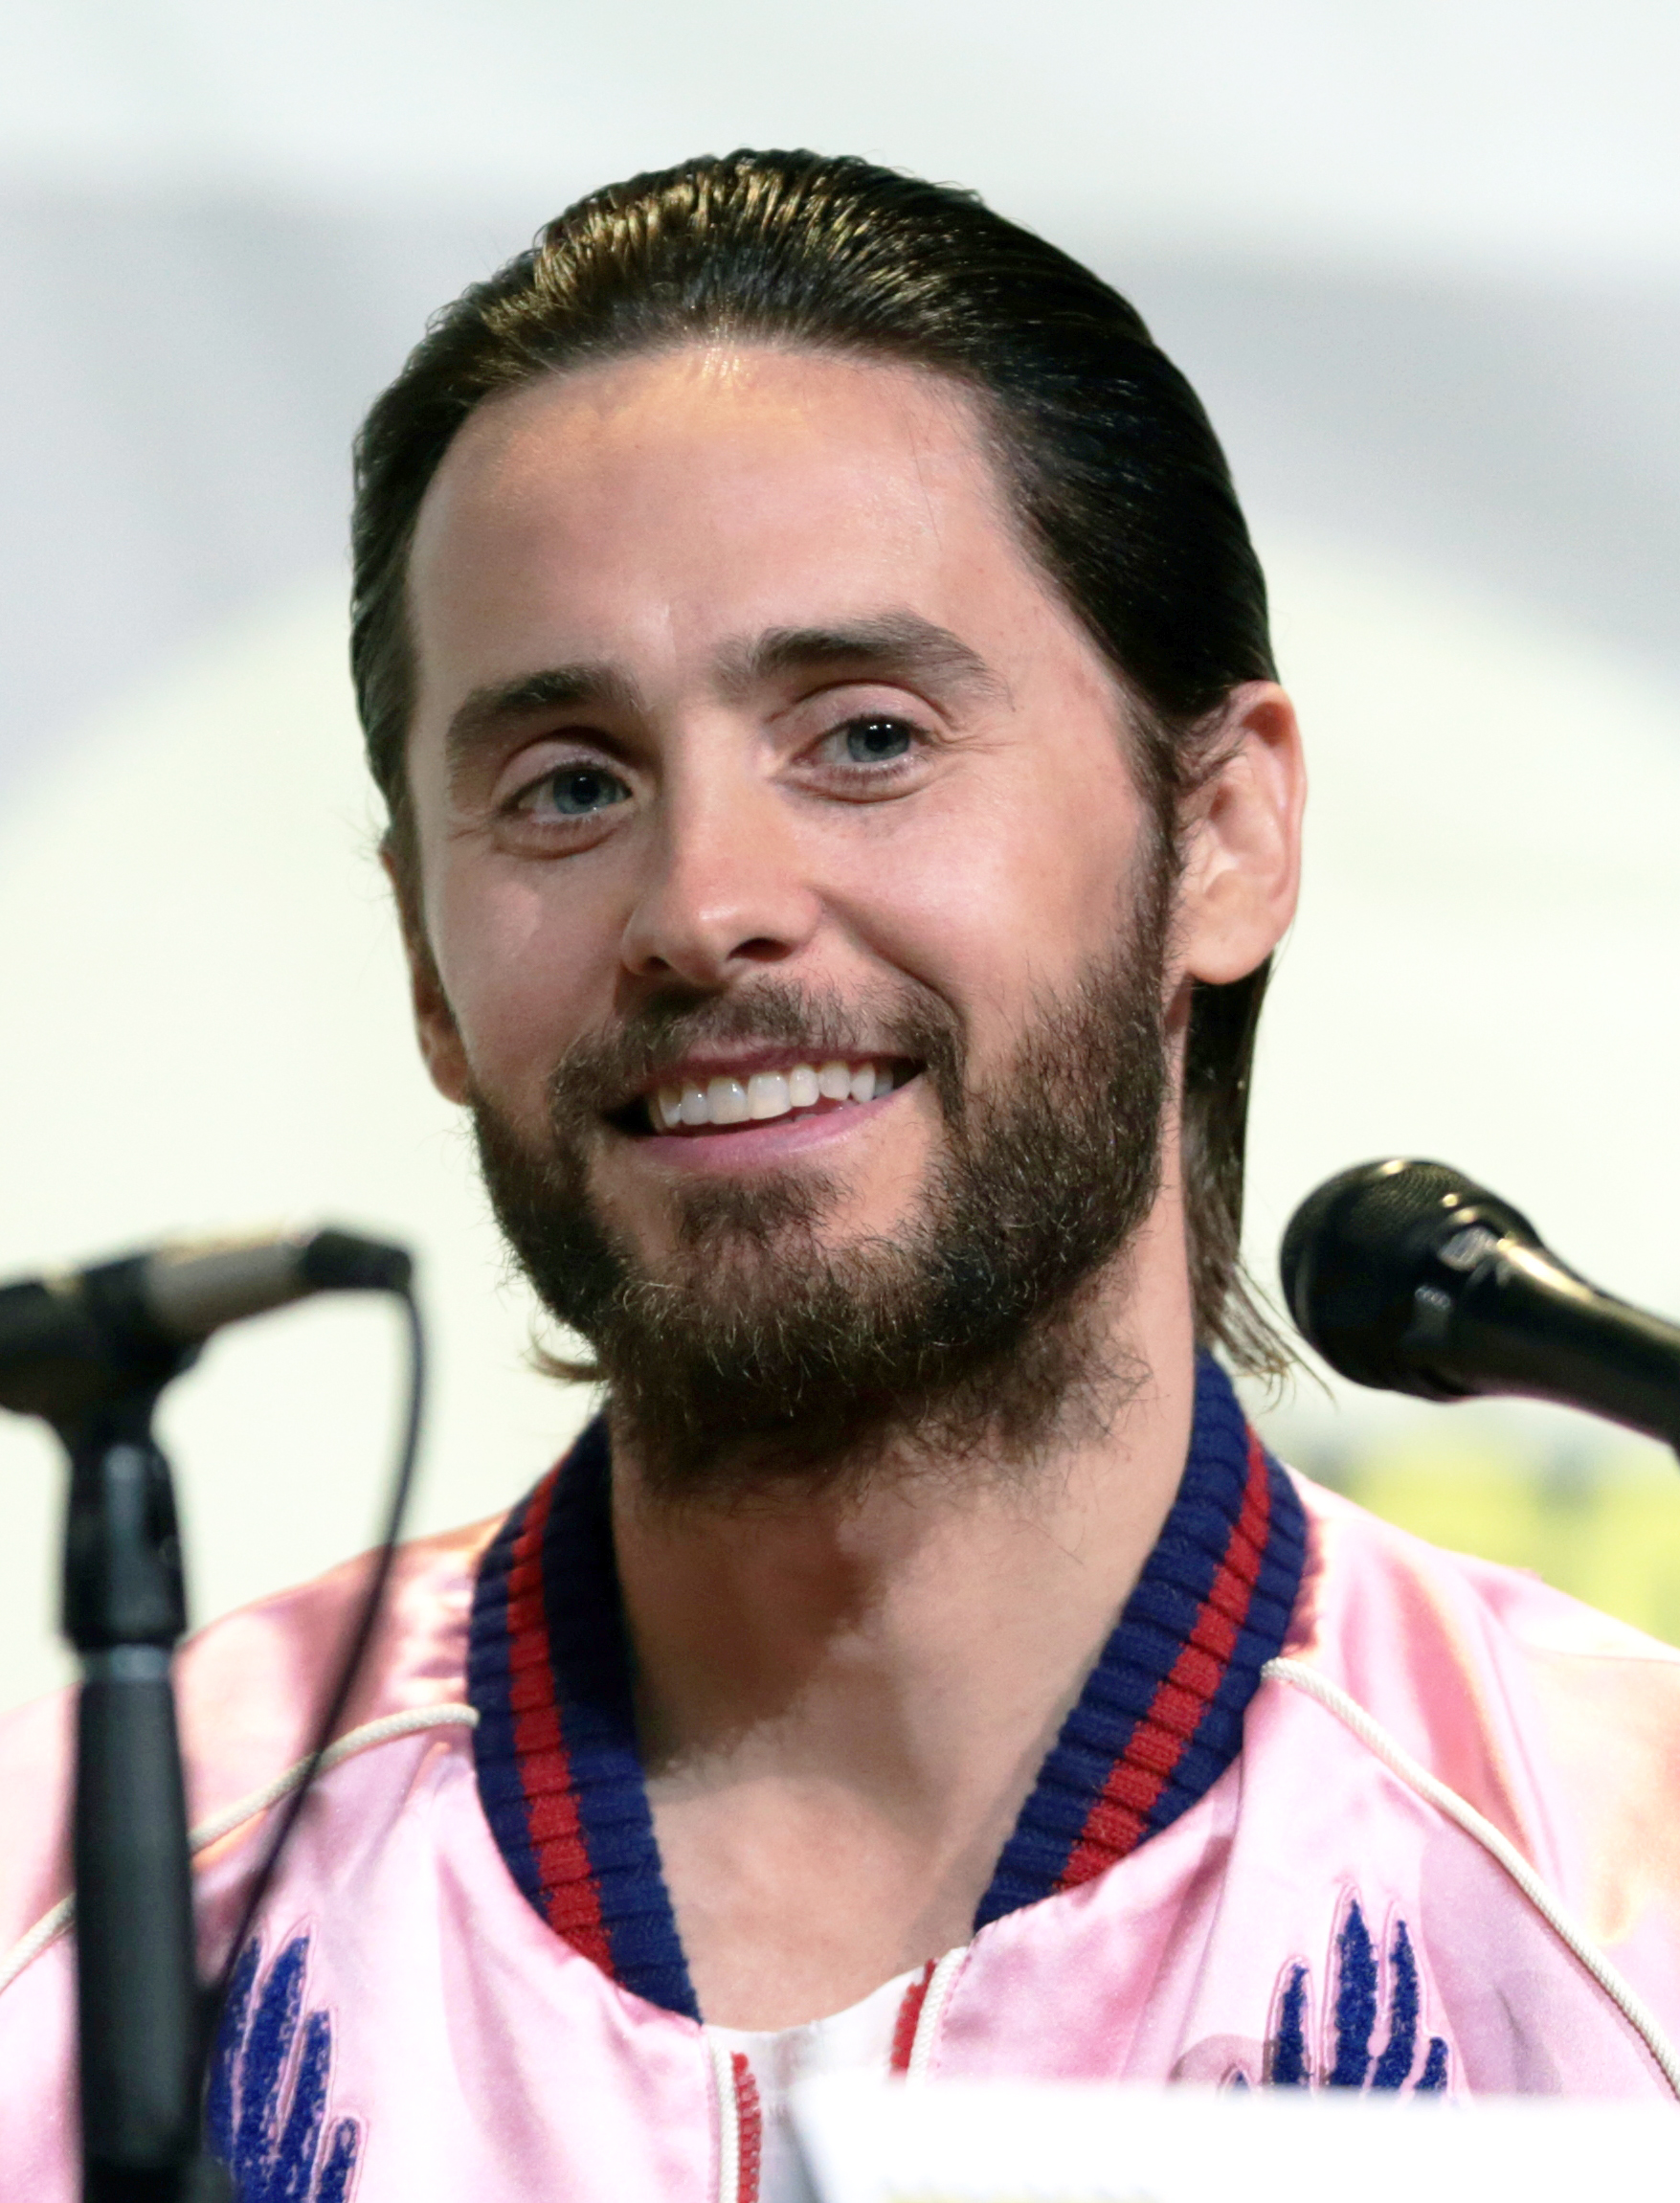 The 46-year old son of father Carl Leto and mother Constance Leto Jared Leto in 2018 photo. Jared Leto earned a  million dollar salary - leaving the net worth at 40 million in 2018